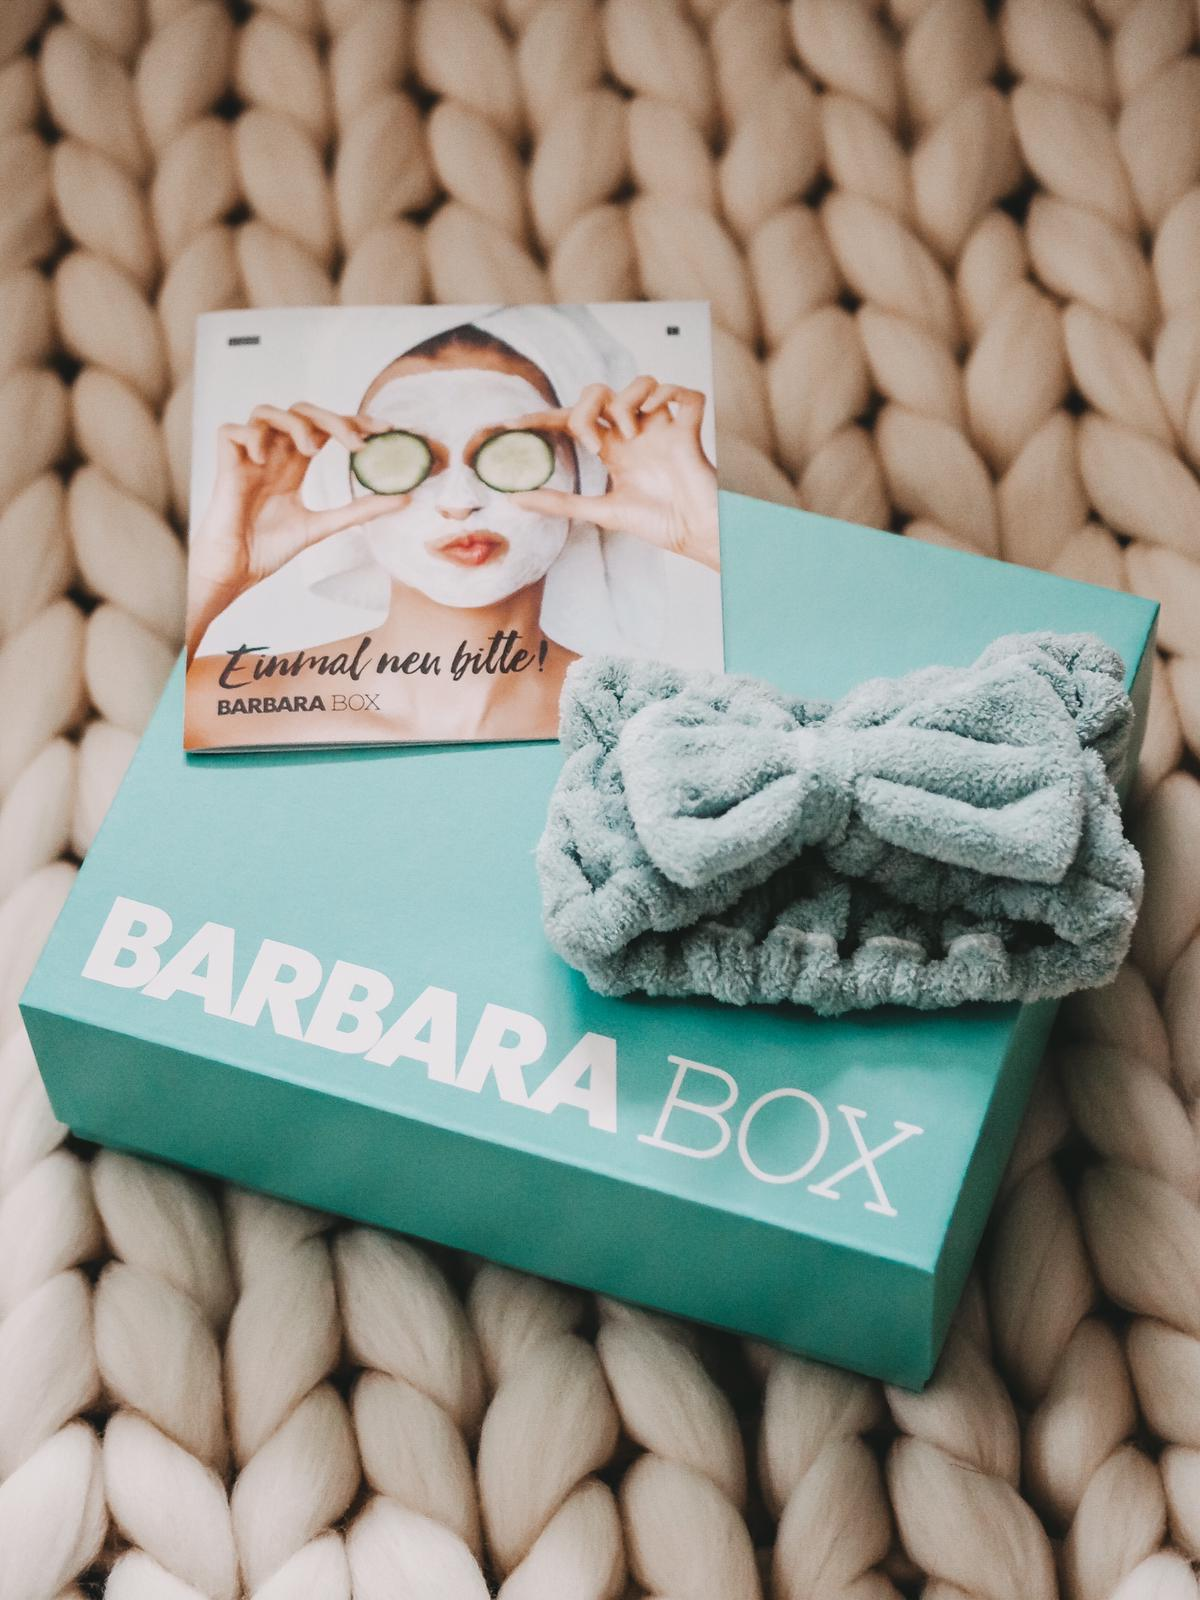 Barbara Box Haarband